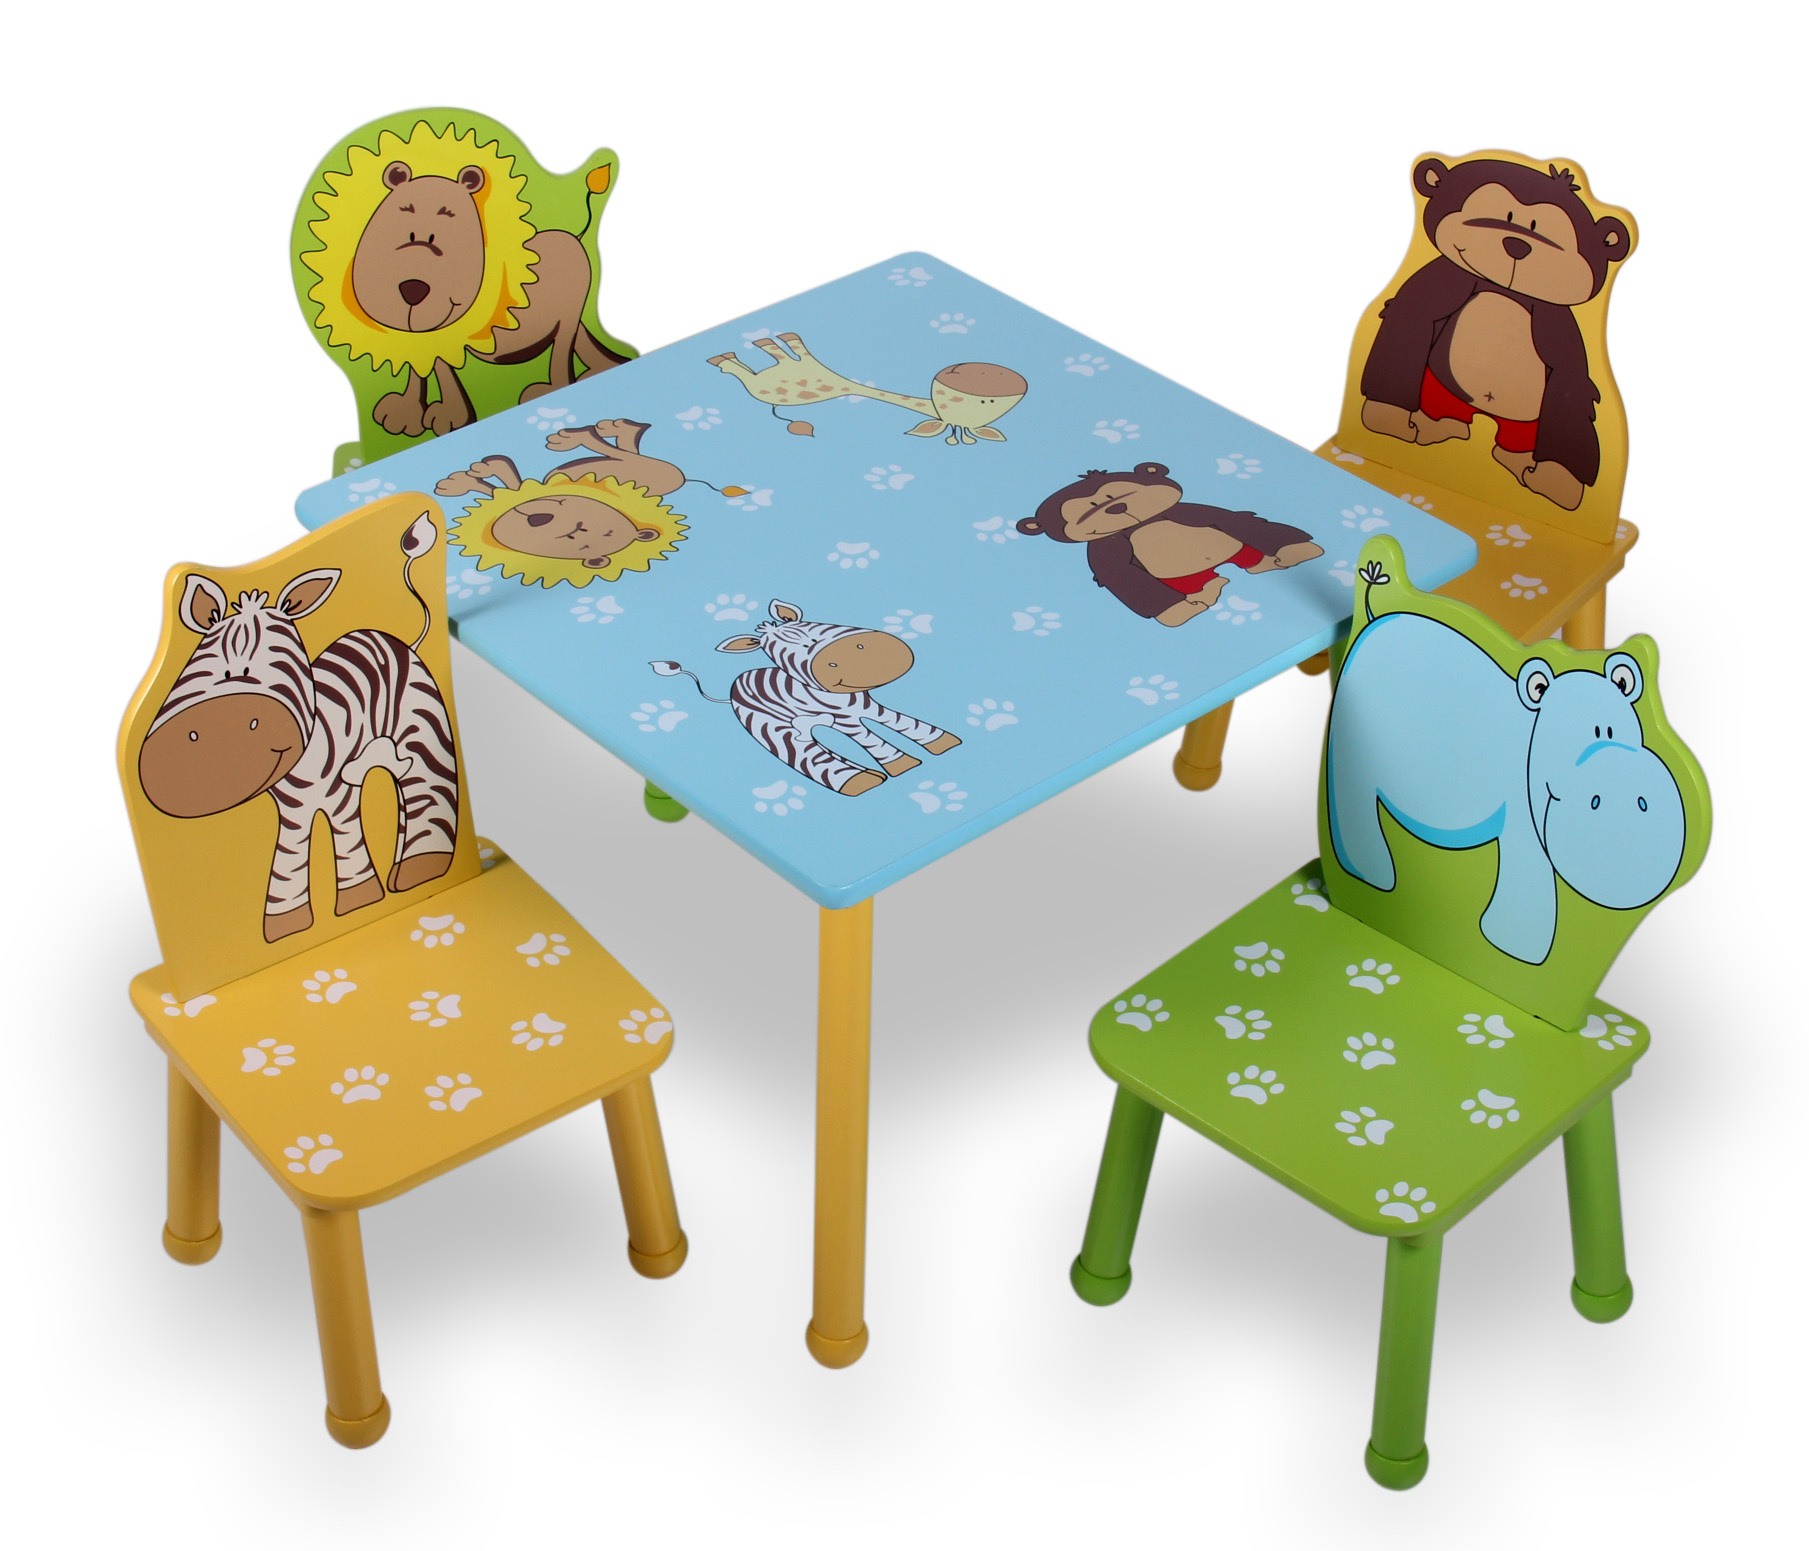 Childrens Wooden Table And Chairs Us 320 Child Furniture Study Desk Bundle Table Chair Combination Game Table Solid Wood Child Tables And Chairs In Children Furniture Sets From